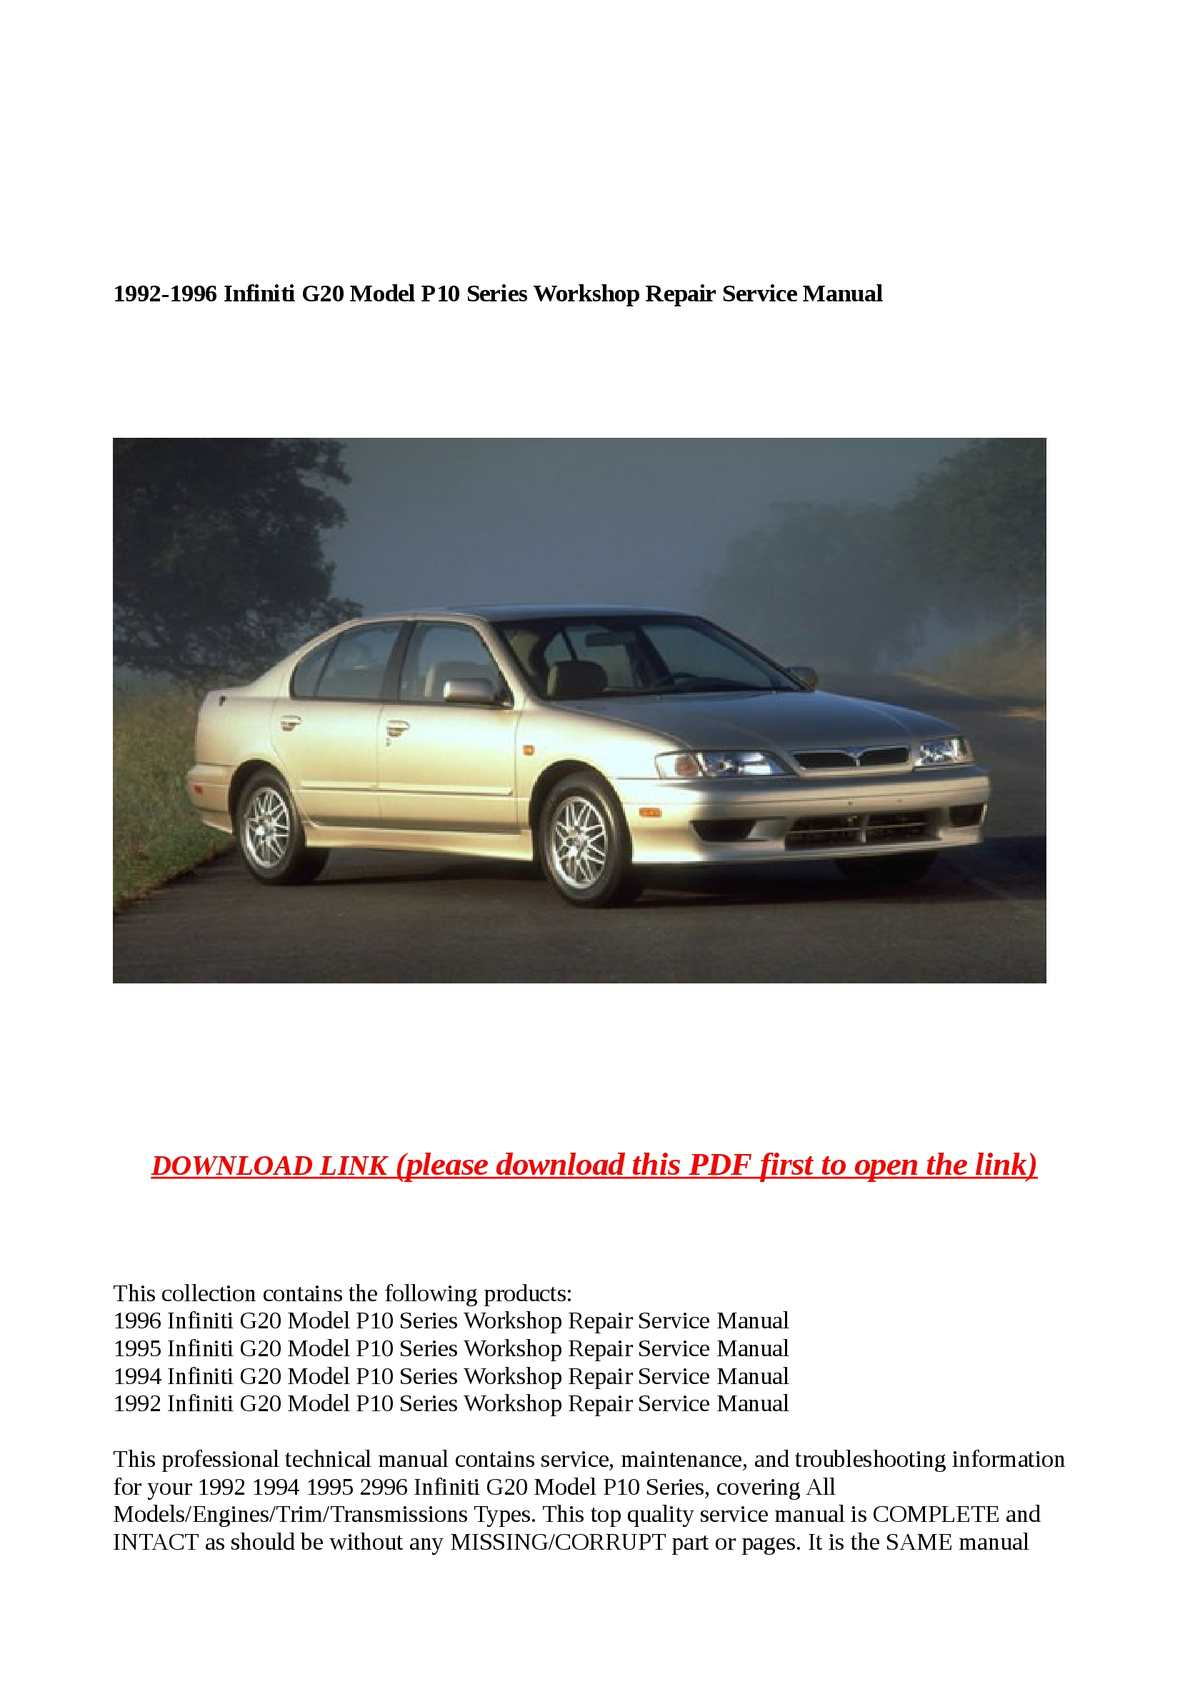 Calaméo - 1992-1996 Infiniti G20 Model P10 Series Workshop Repair Service  Manual